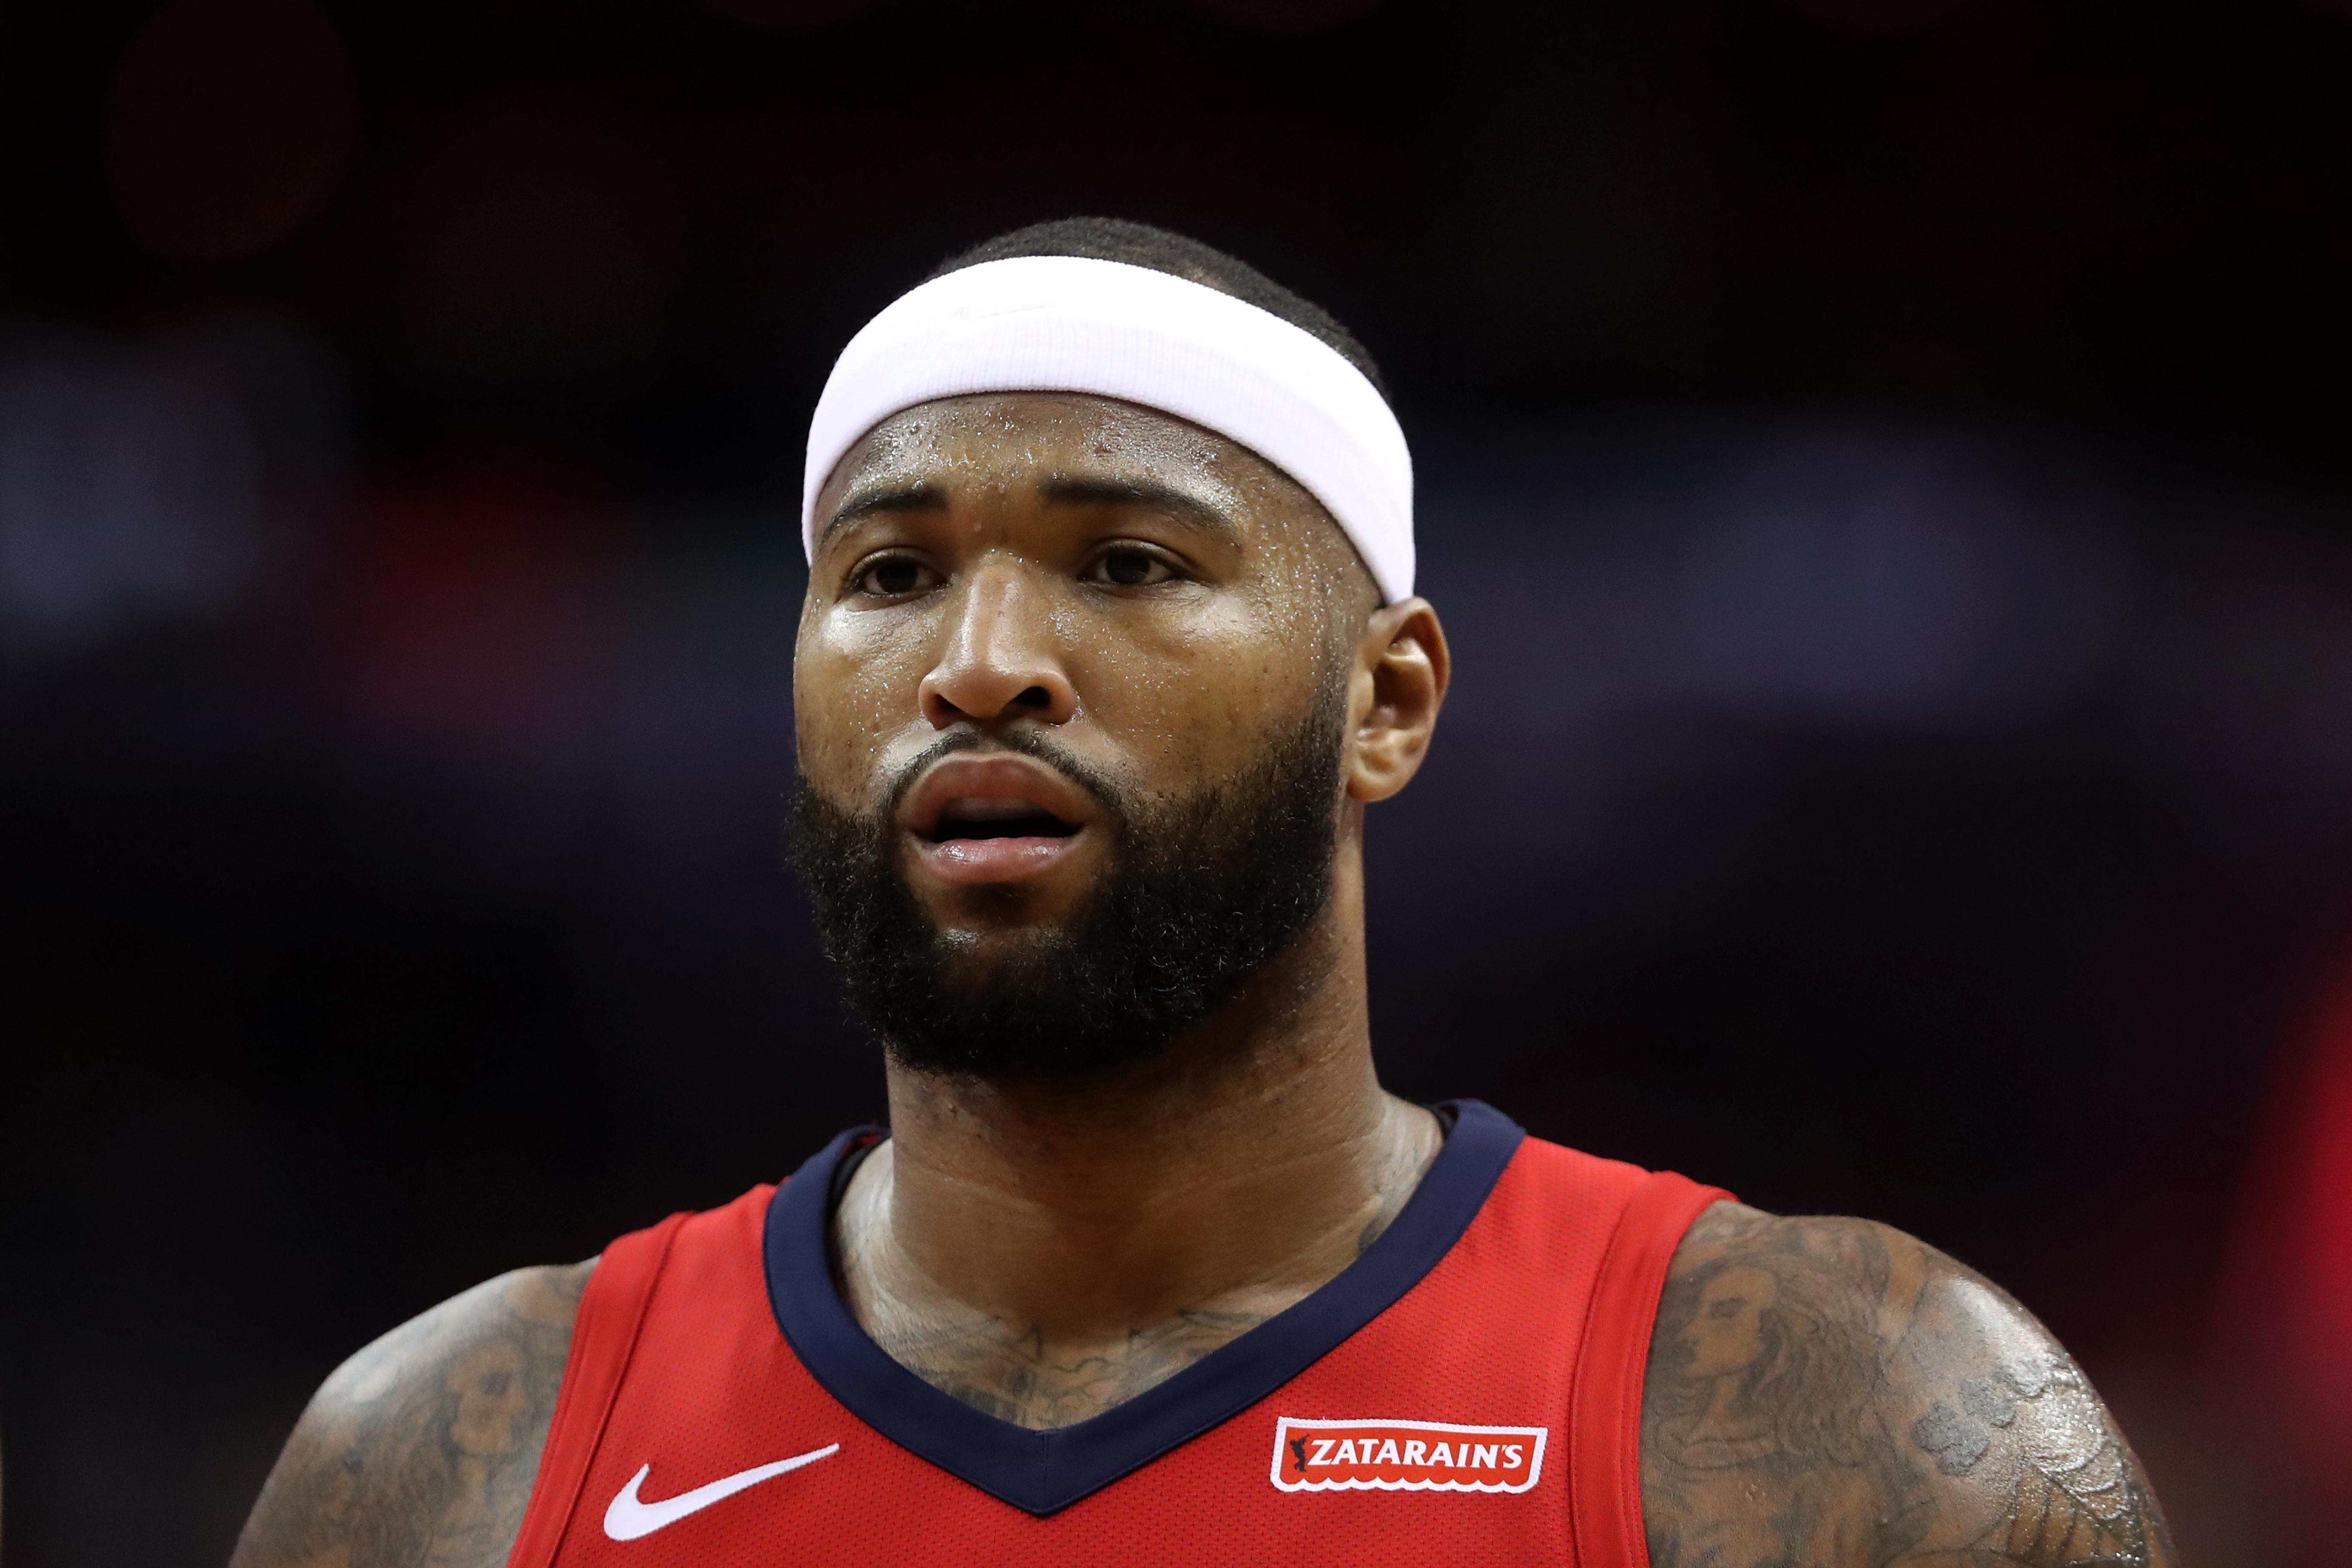 DeMarcus Cousins Tweets For First Time Since Injury: 'This Sh-t Sucks!'